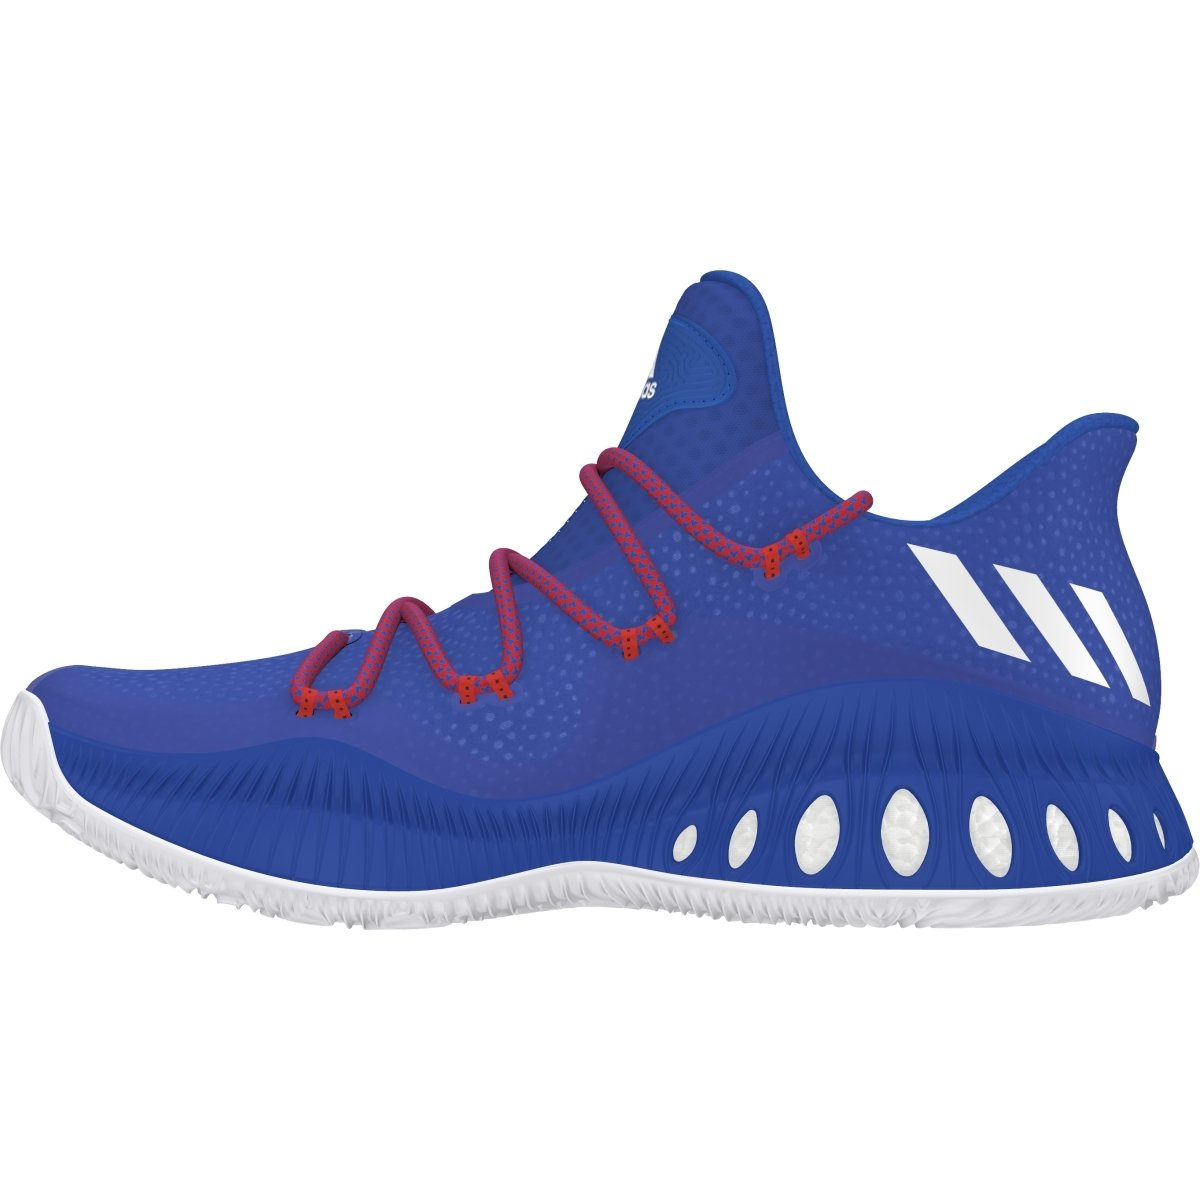 adidas Crazy Explosive Low Shoe Men's Basketball B07BLQLC4J 6.5 D(M) US|Blue